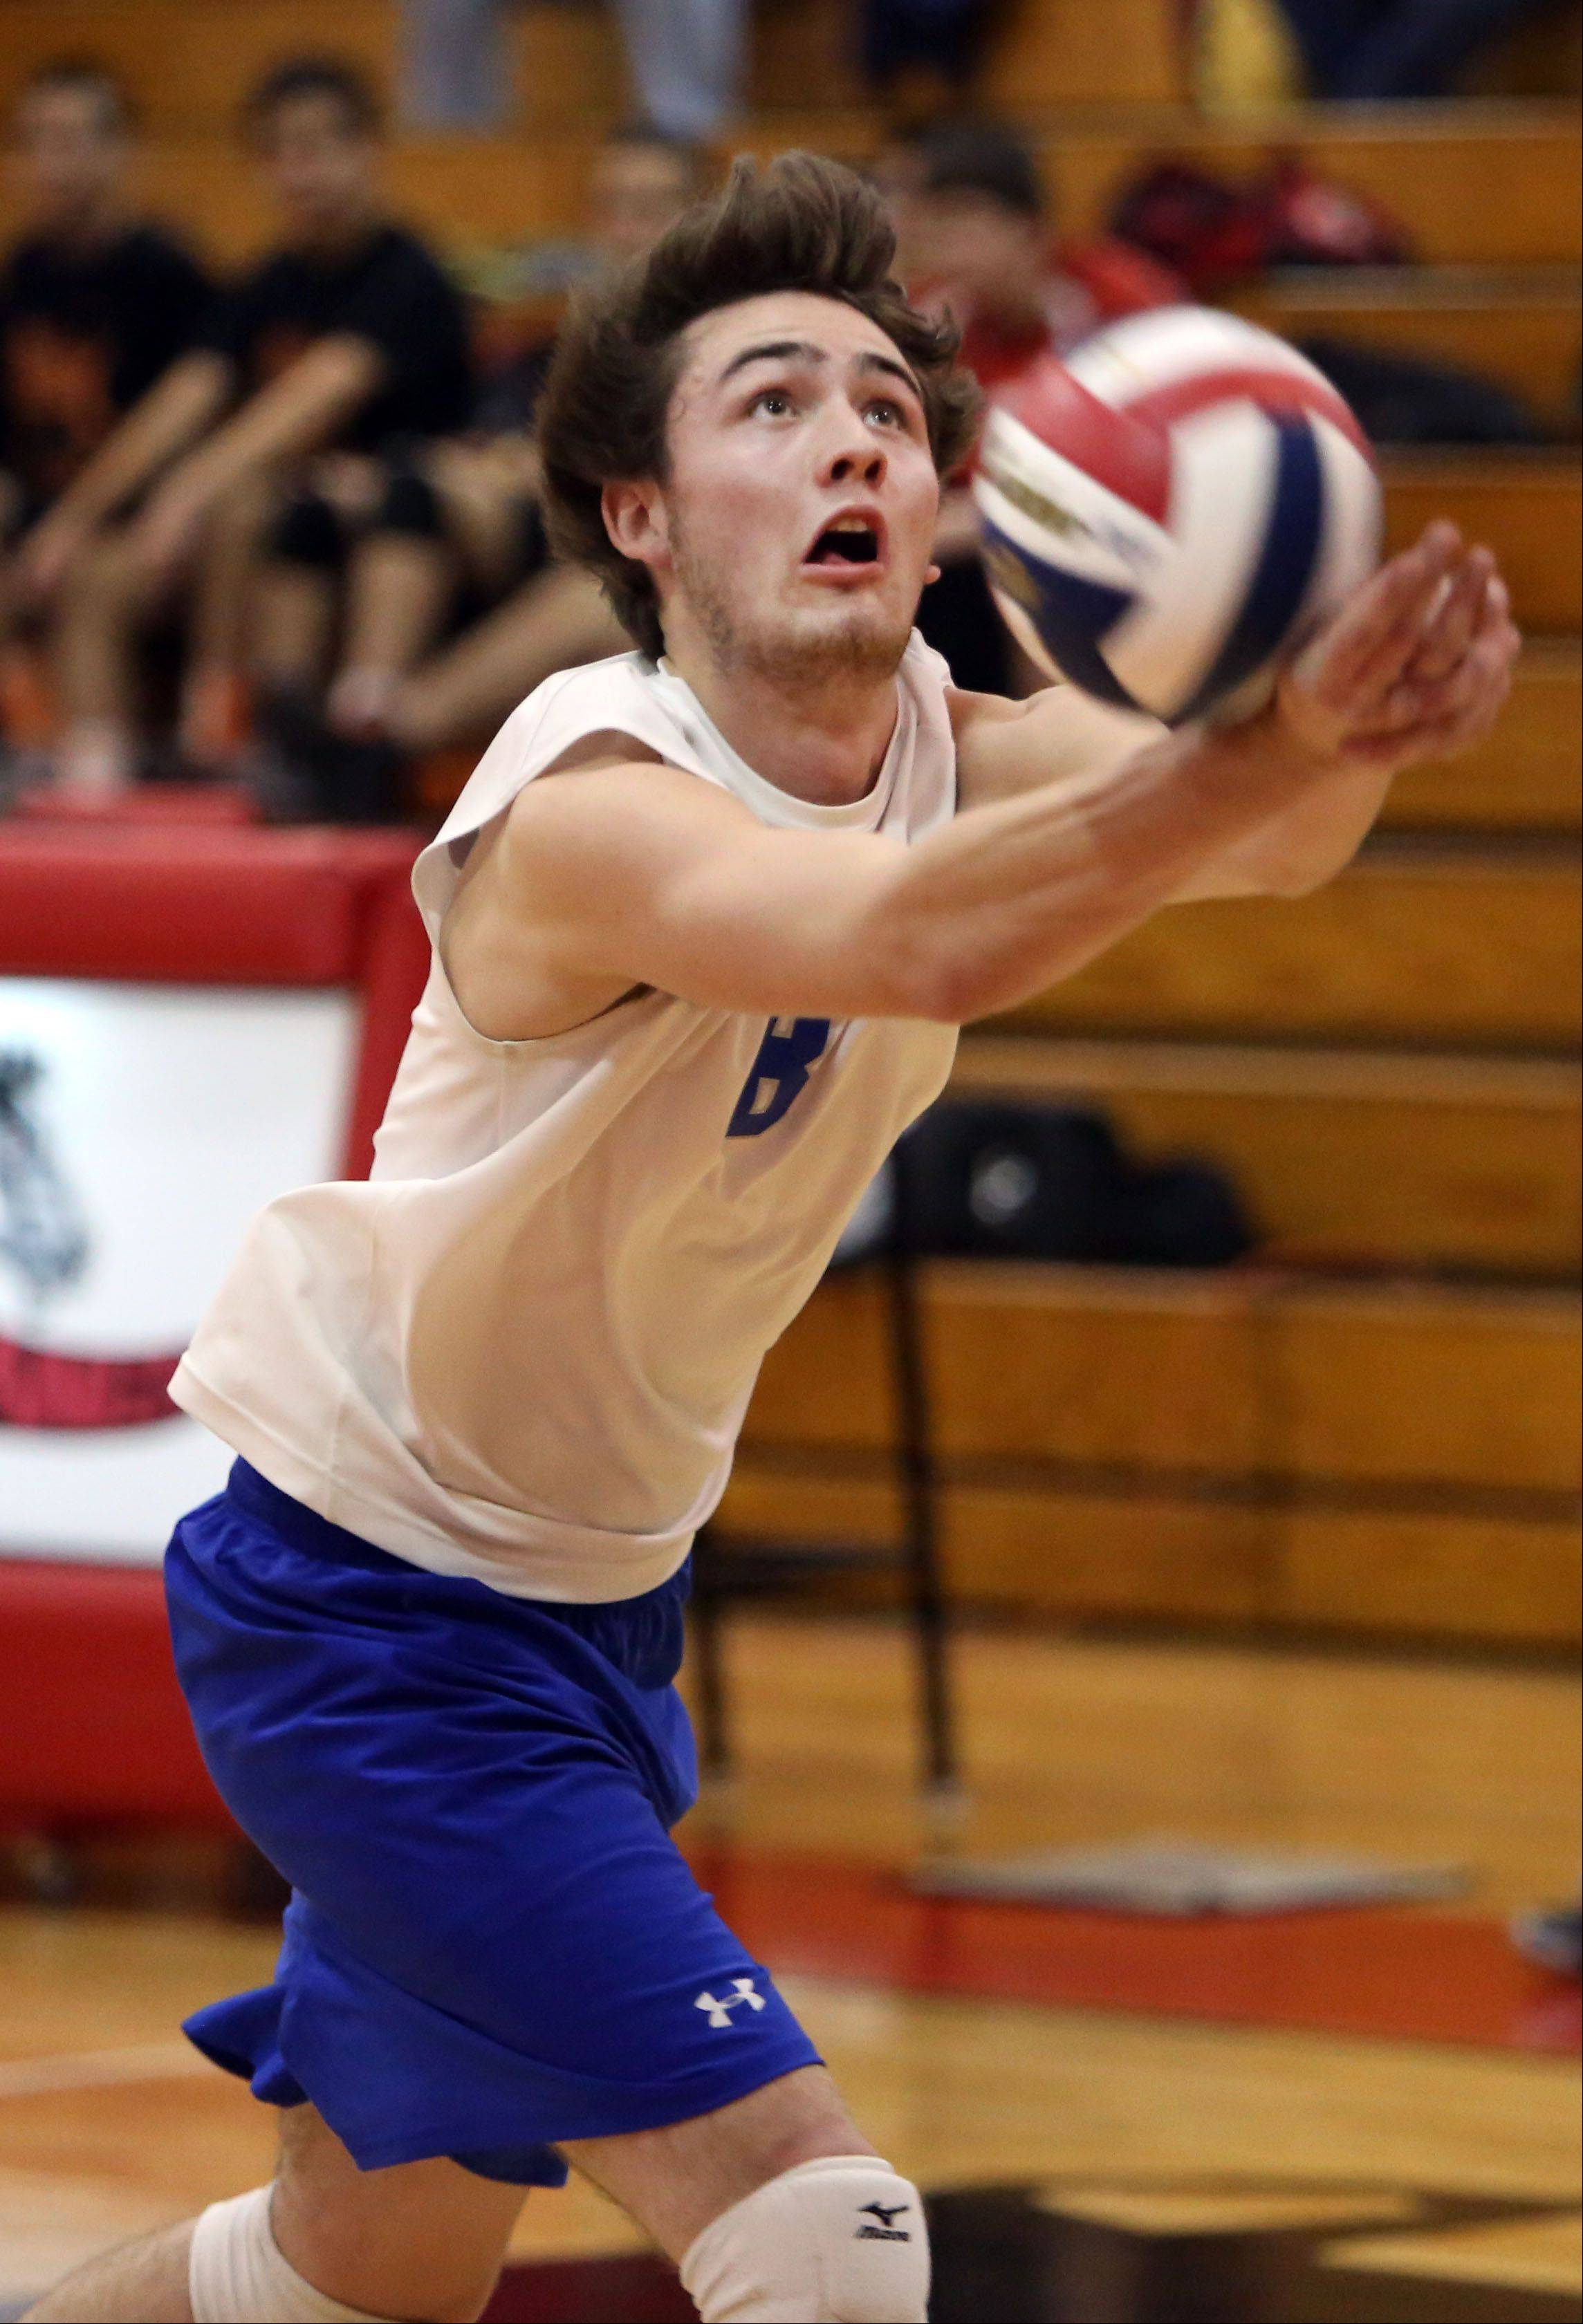 Vernon Hills' Ryan Opitz tracks down a stray ball Wednesday night at Mundelein.